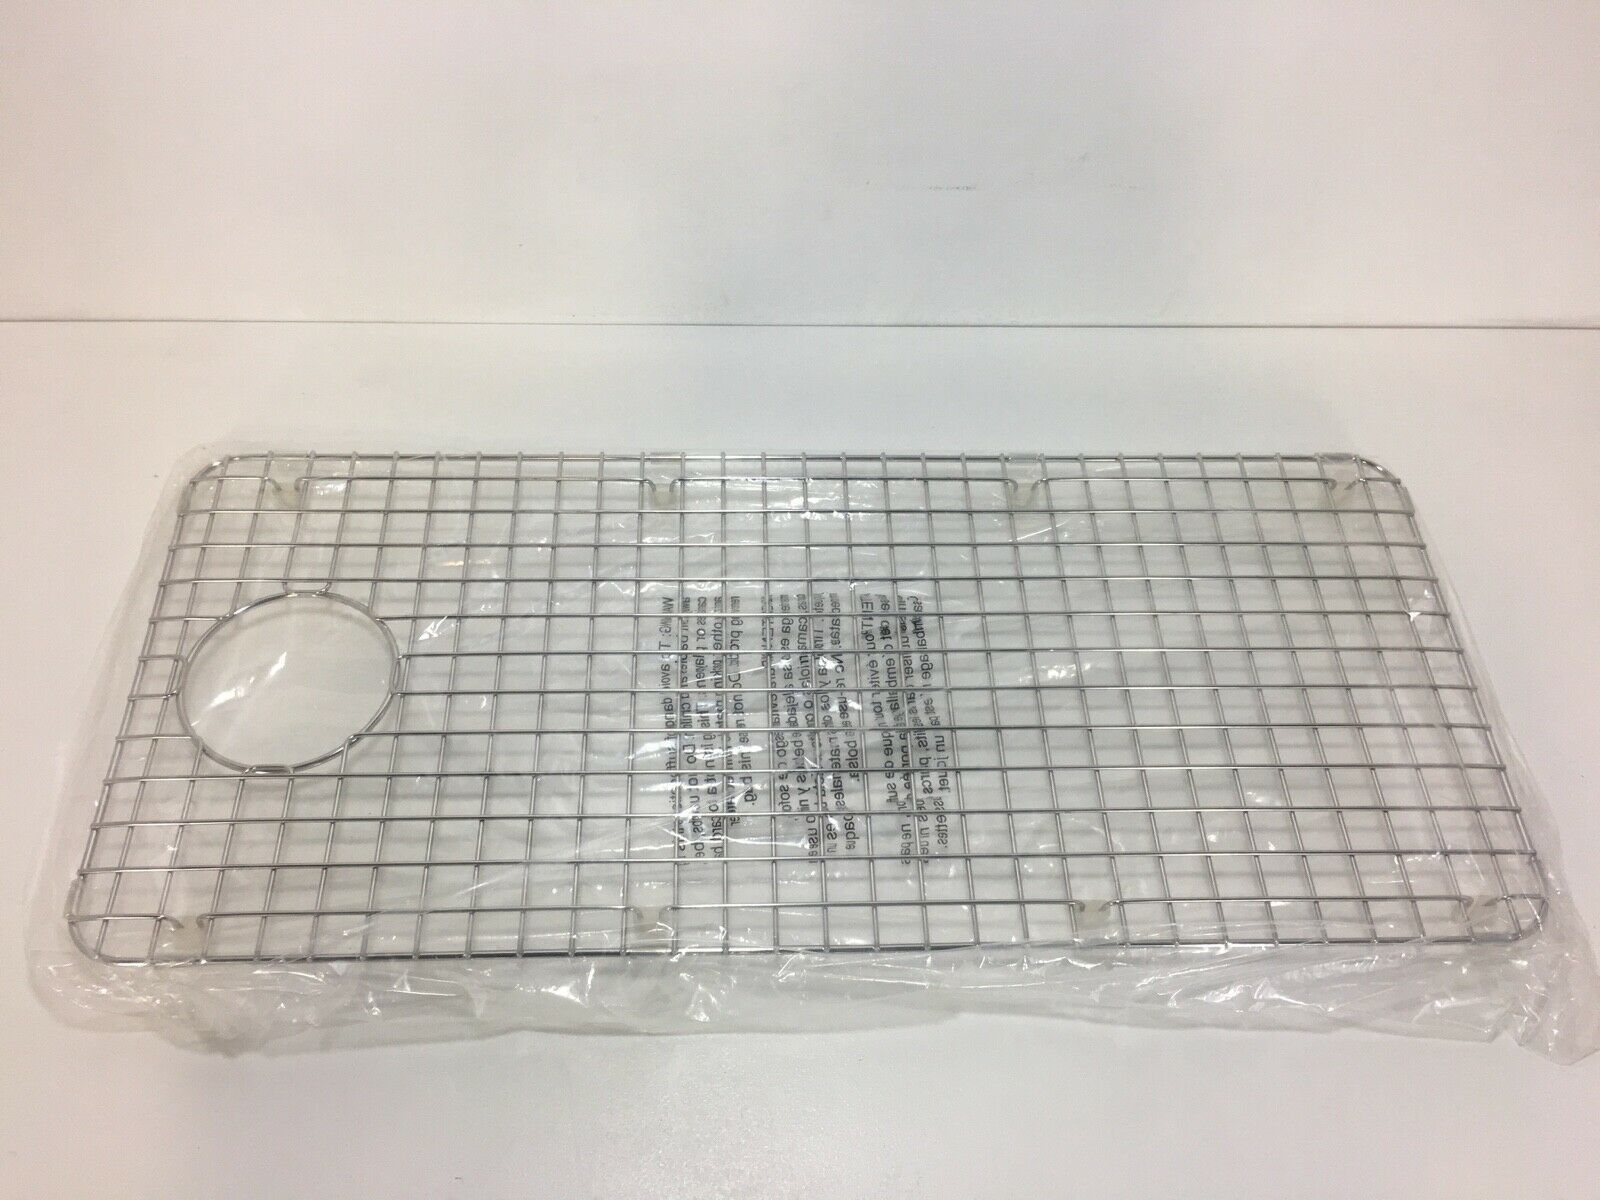 """American Standard Orchard 7381393-202.0750A 36"""" Sink Rack For D20066.036 image 2"""